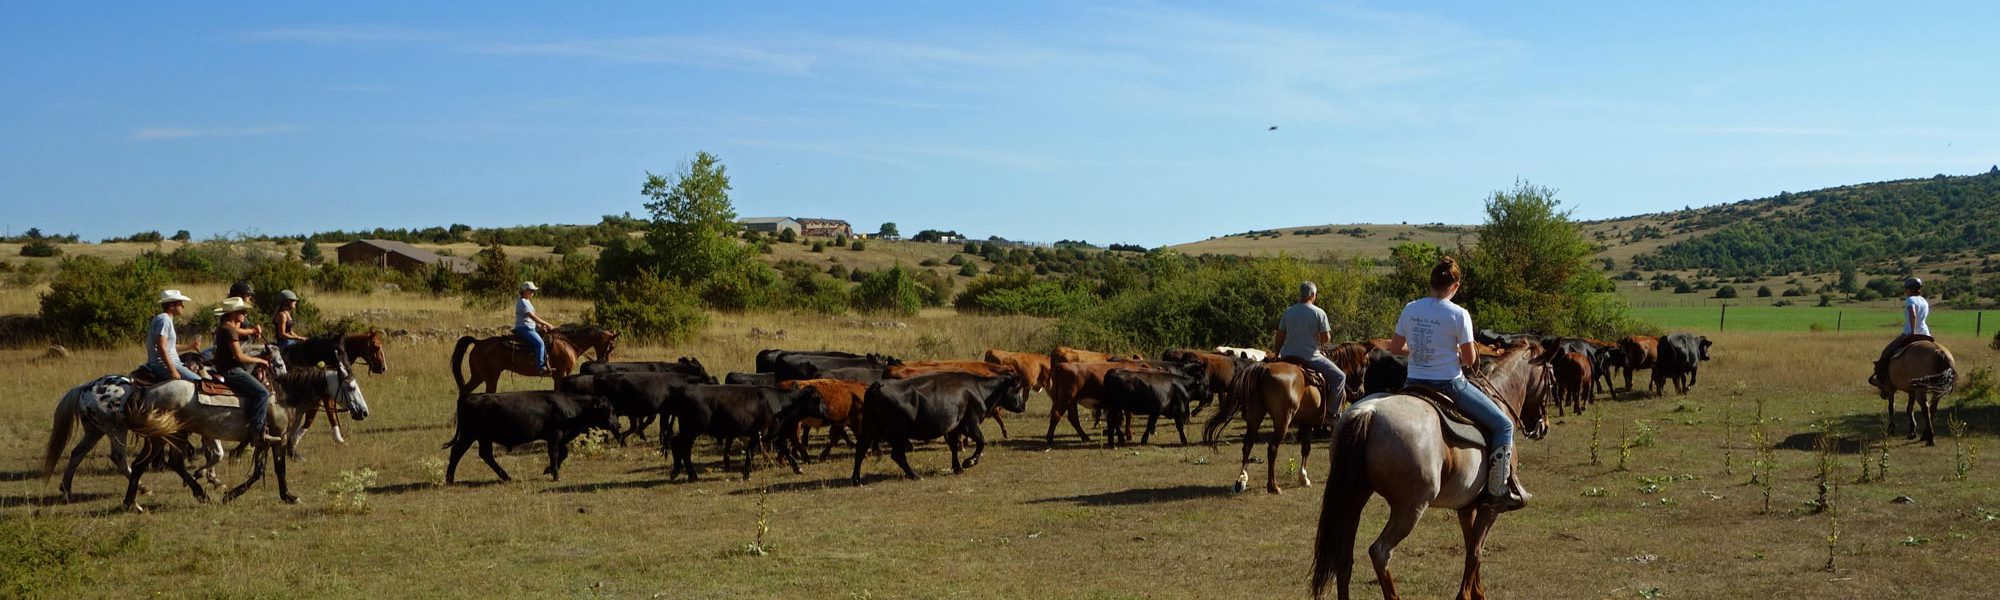 s-2-cavaliers-vaches